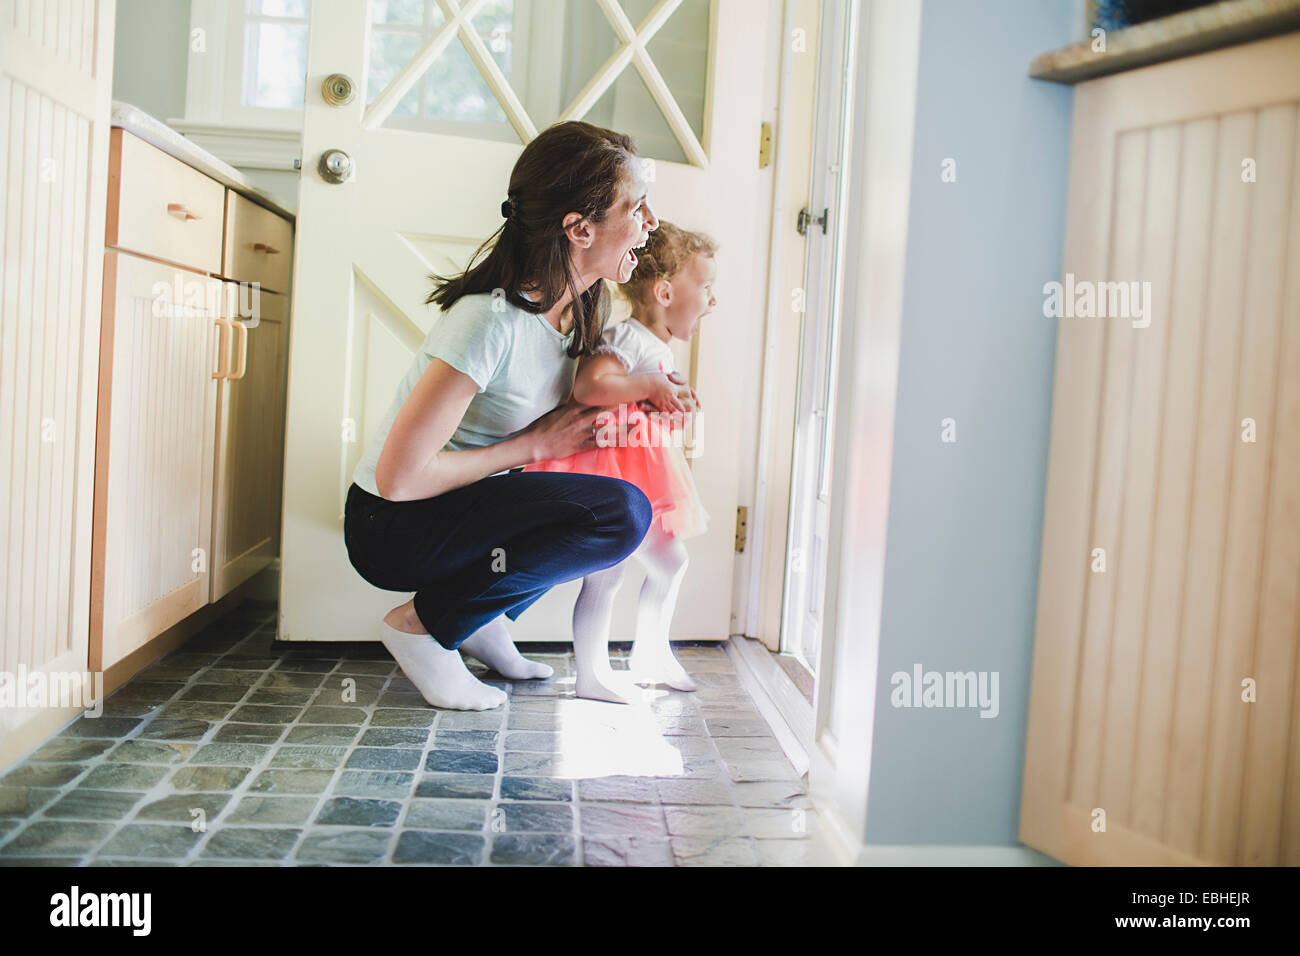 Mother and daughter laughing at doorway - Stock Image